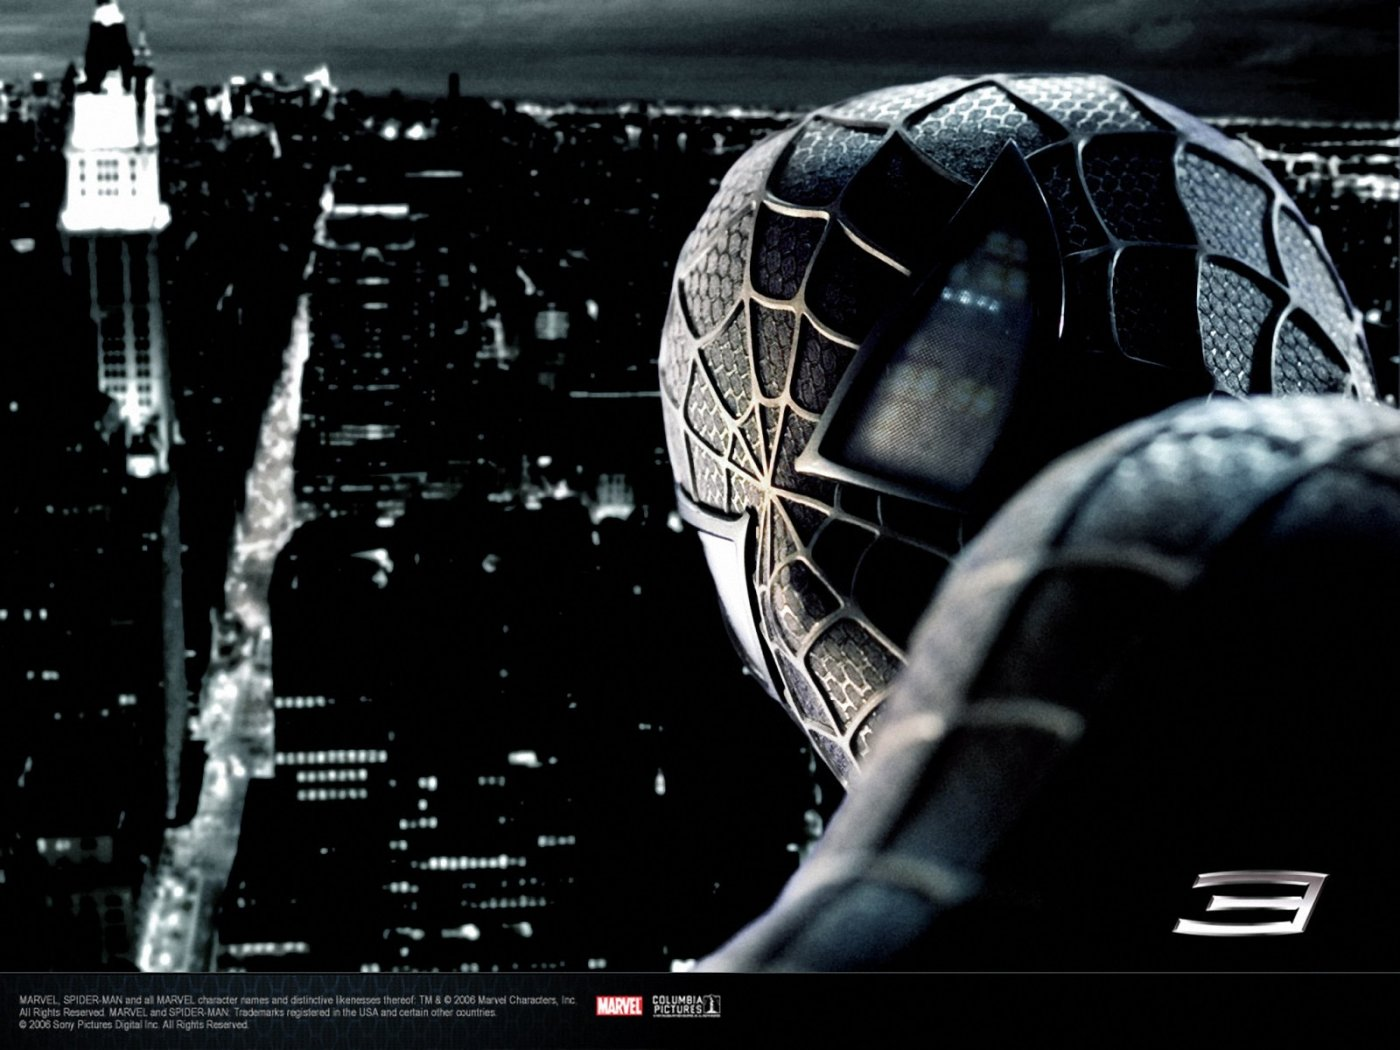 Spider Man 3 Wallpaper 1400x1050 Wallpapers 1400x1050 Wallpapers 1400x1050